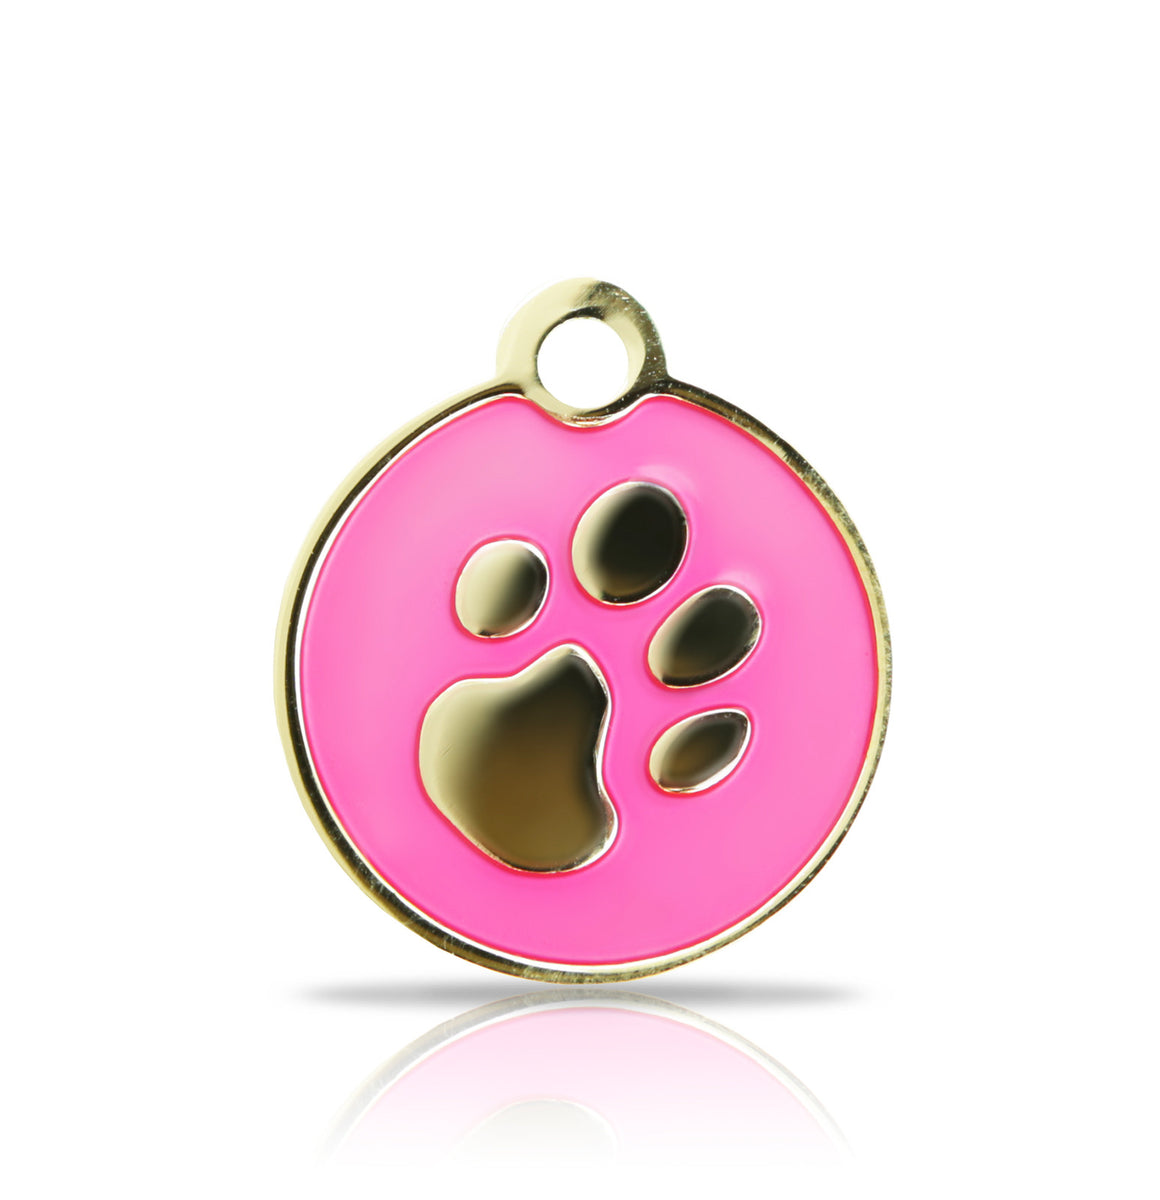 TaggIT Elegance Small Disc Pink & Gold Paw Print Tag